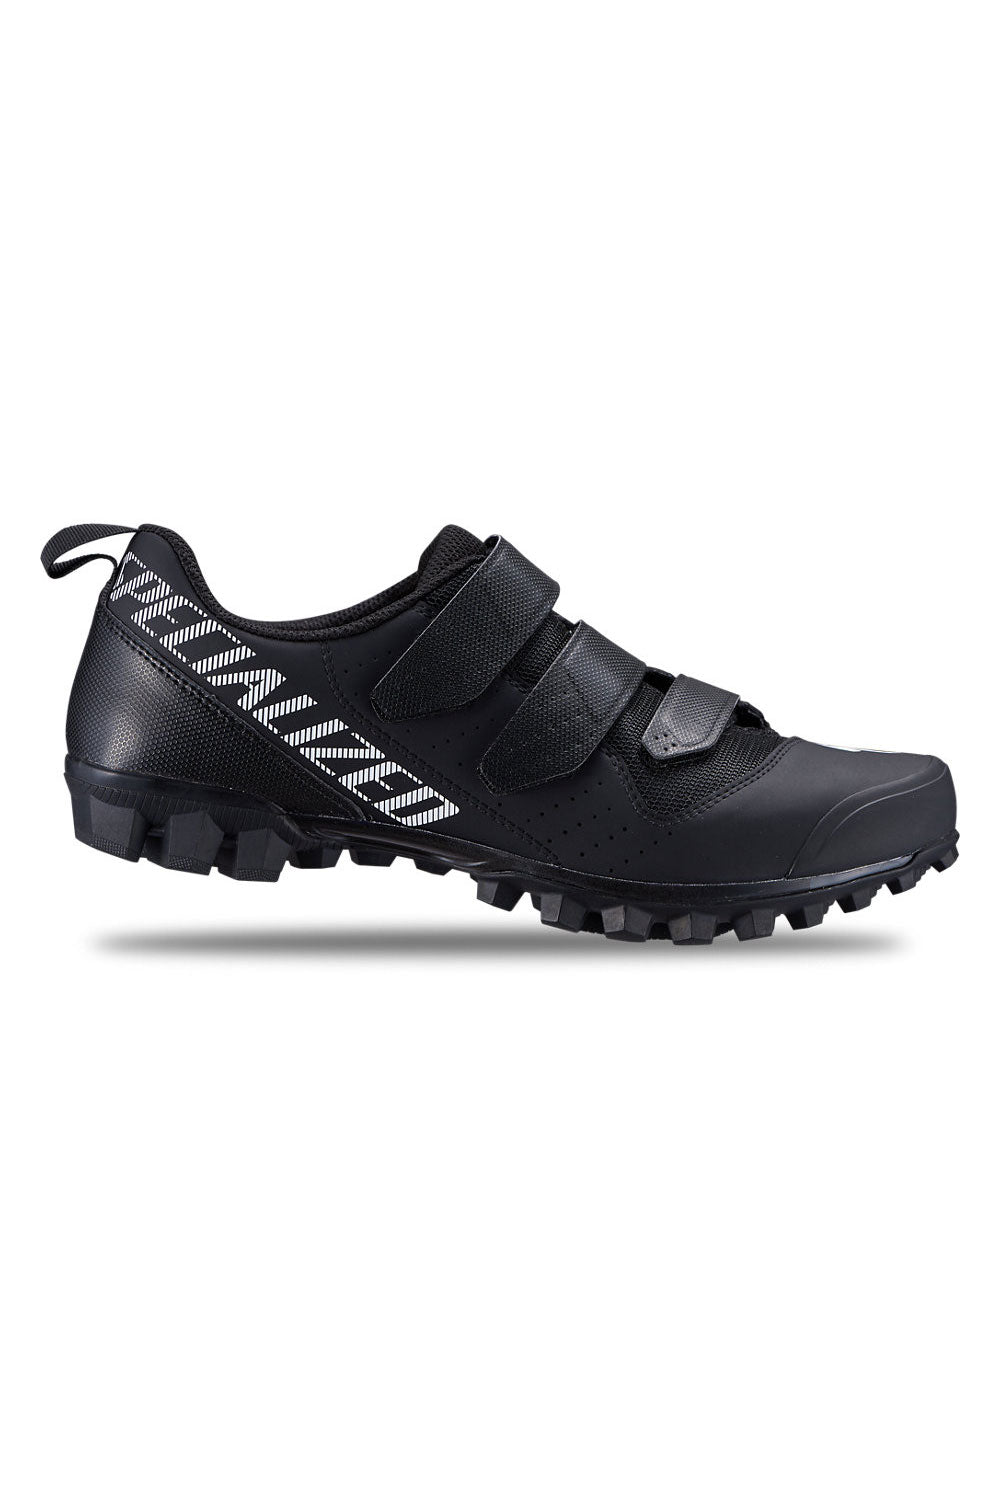 SPECIALIZED RECON 1.0 BIKE SHOE